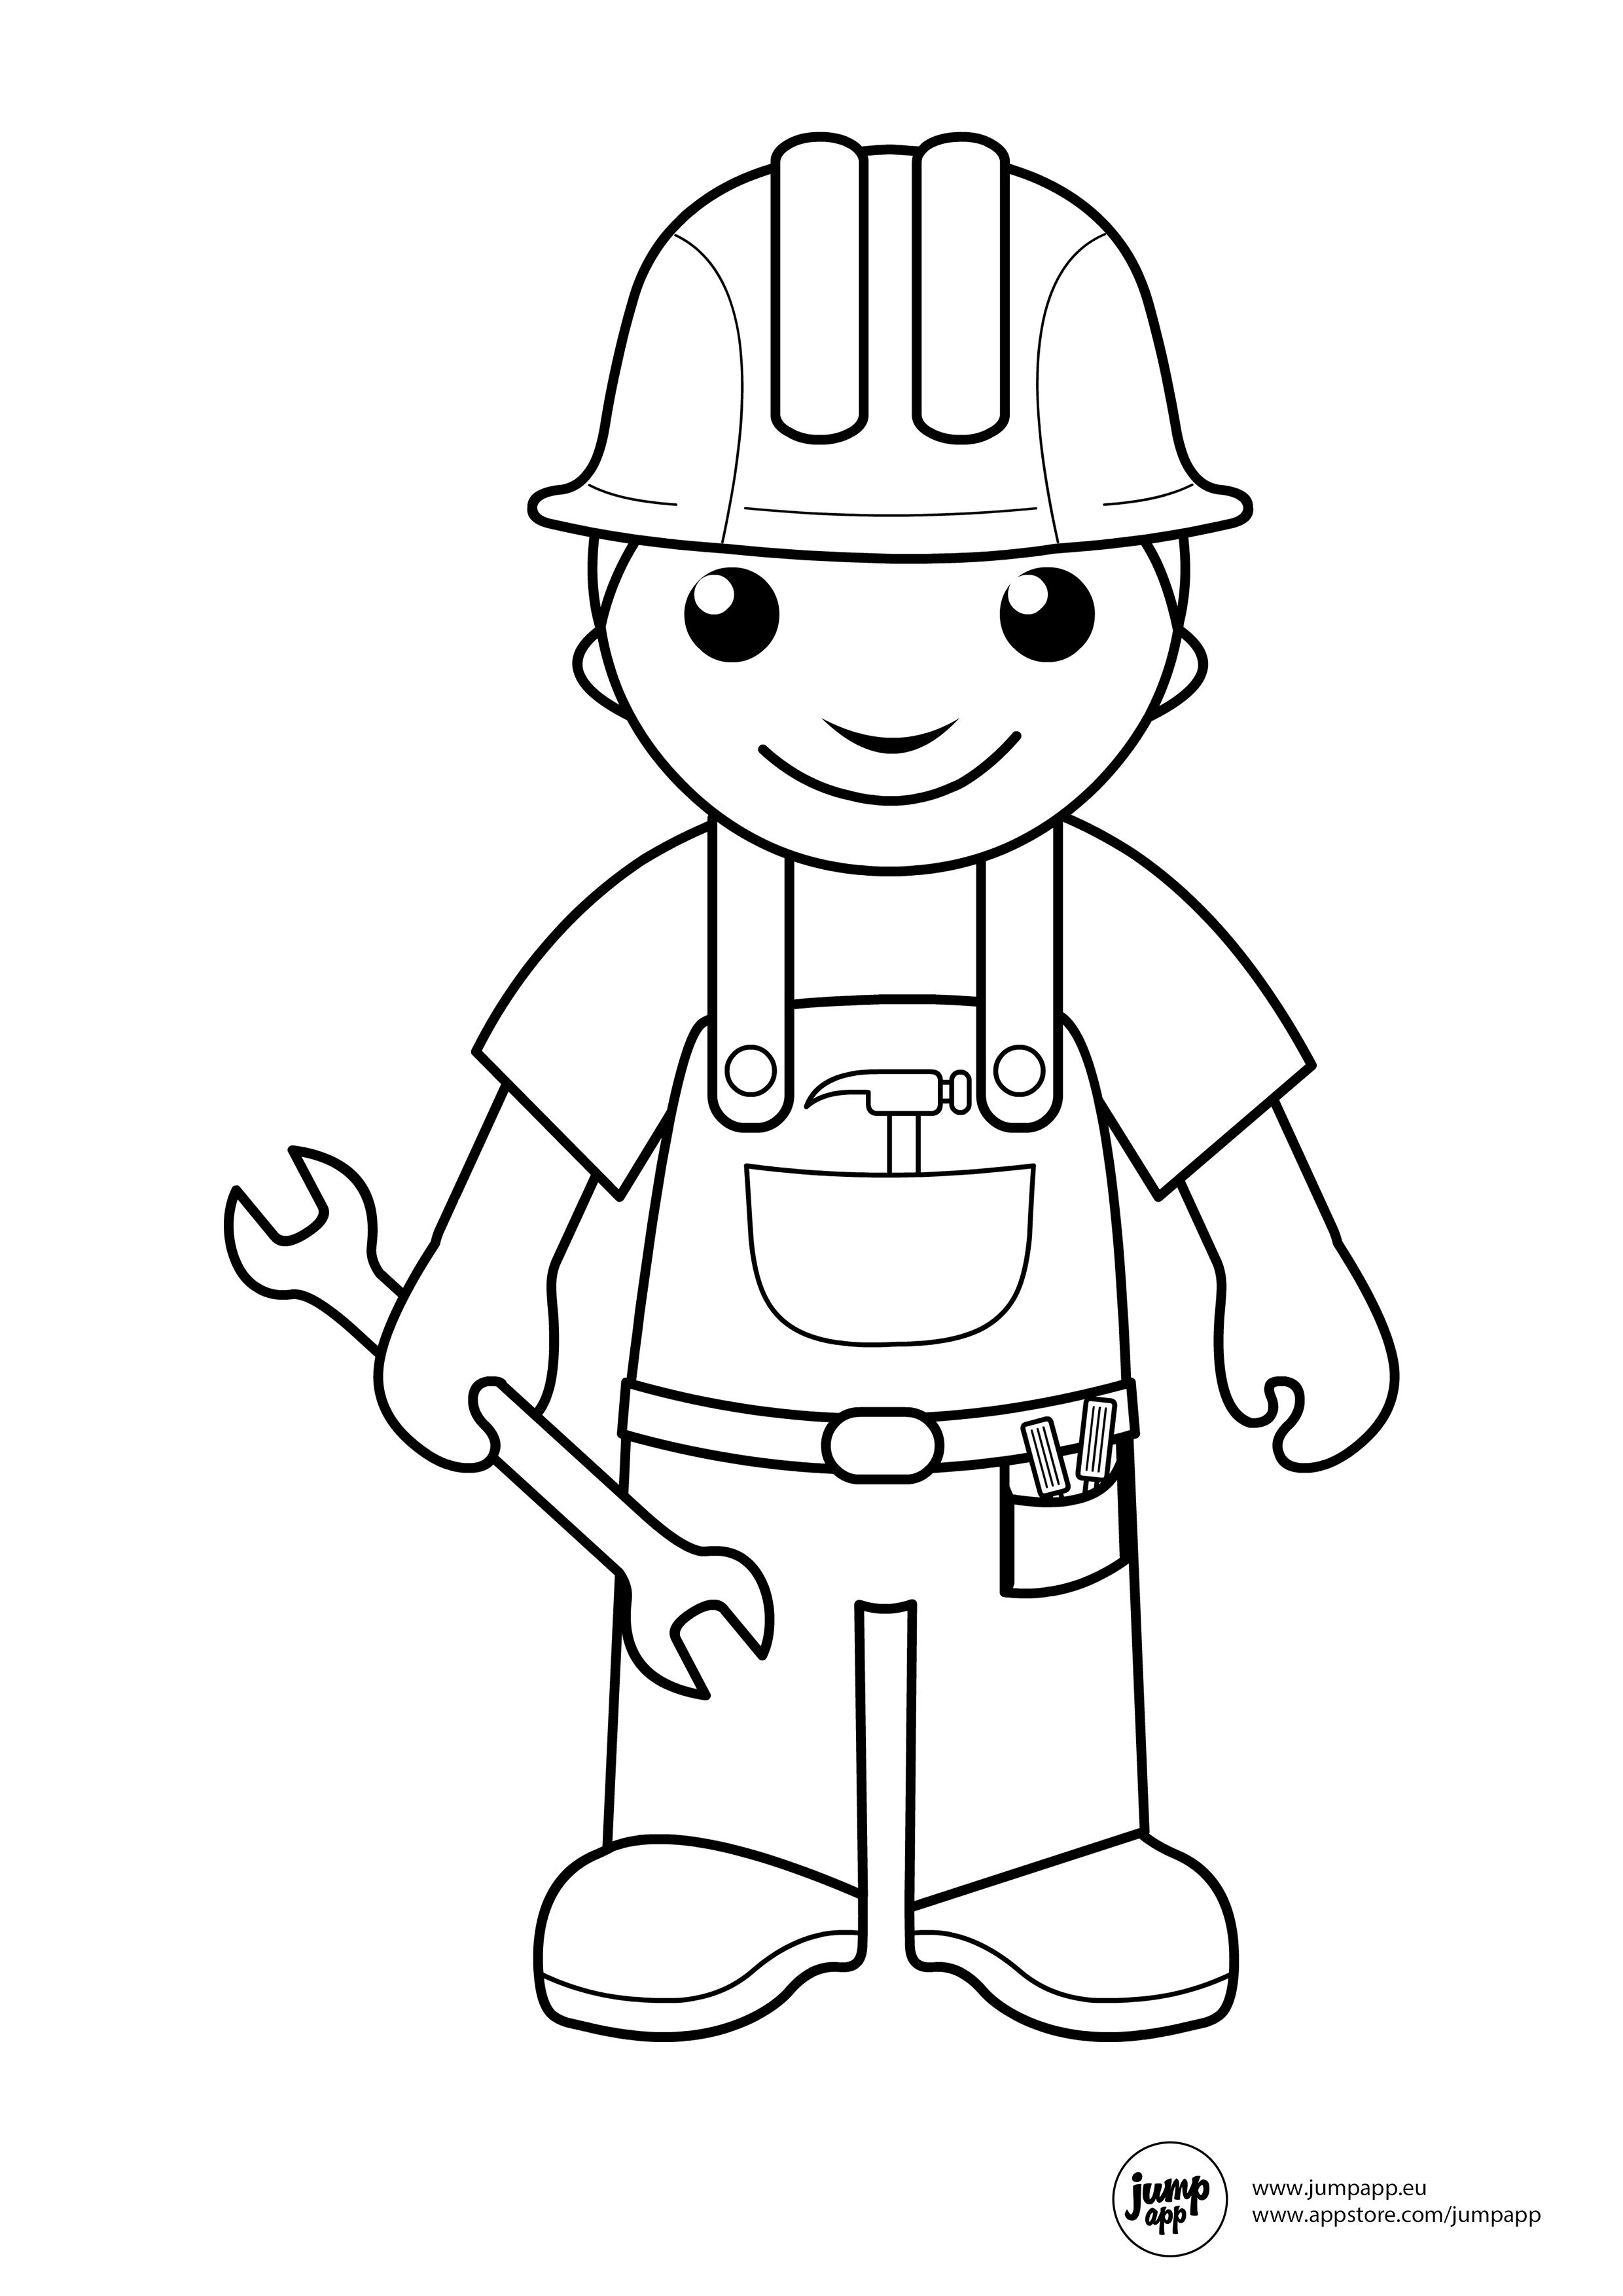 coloring community helpers images free printable community helper coloring pages for kids helpers images coloring community